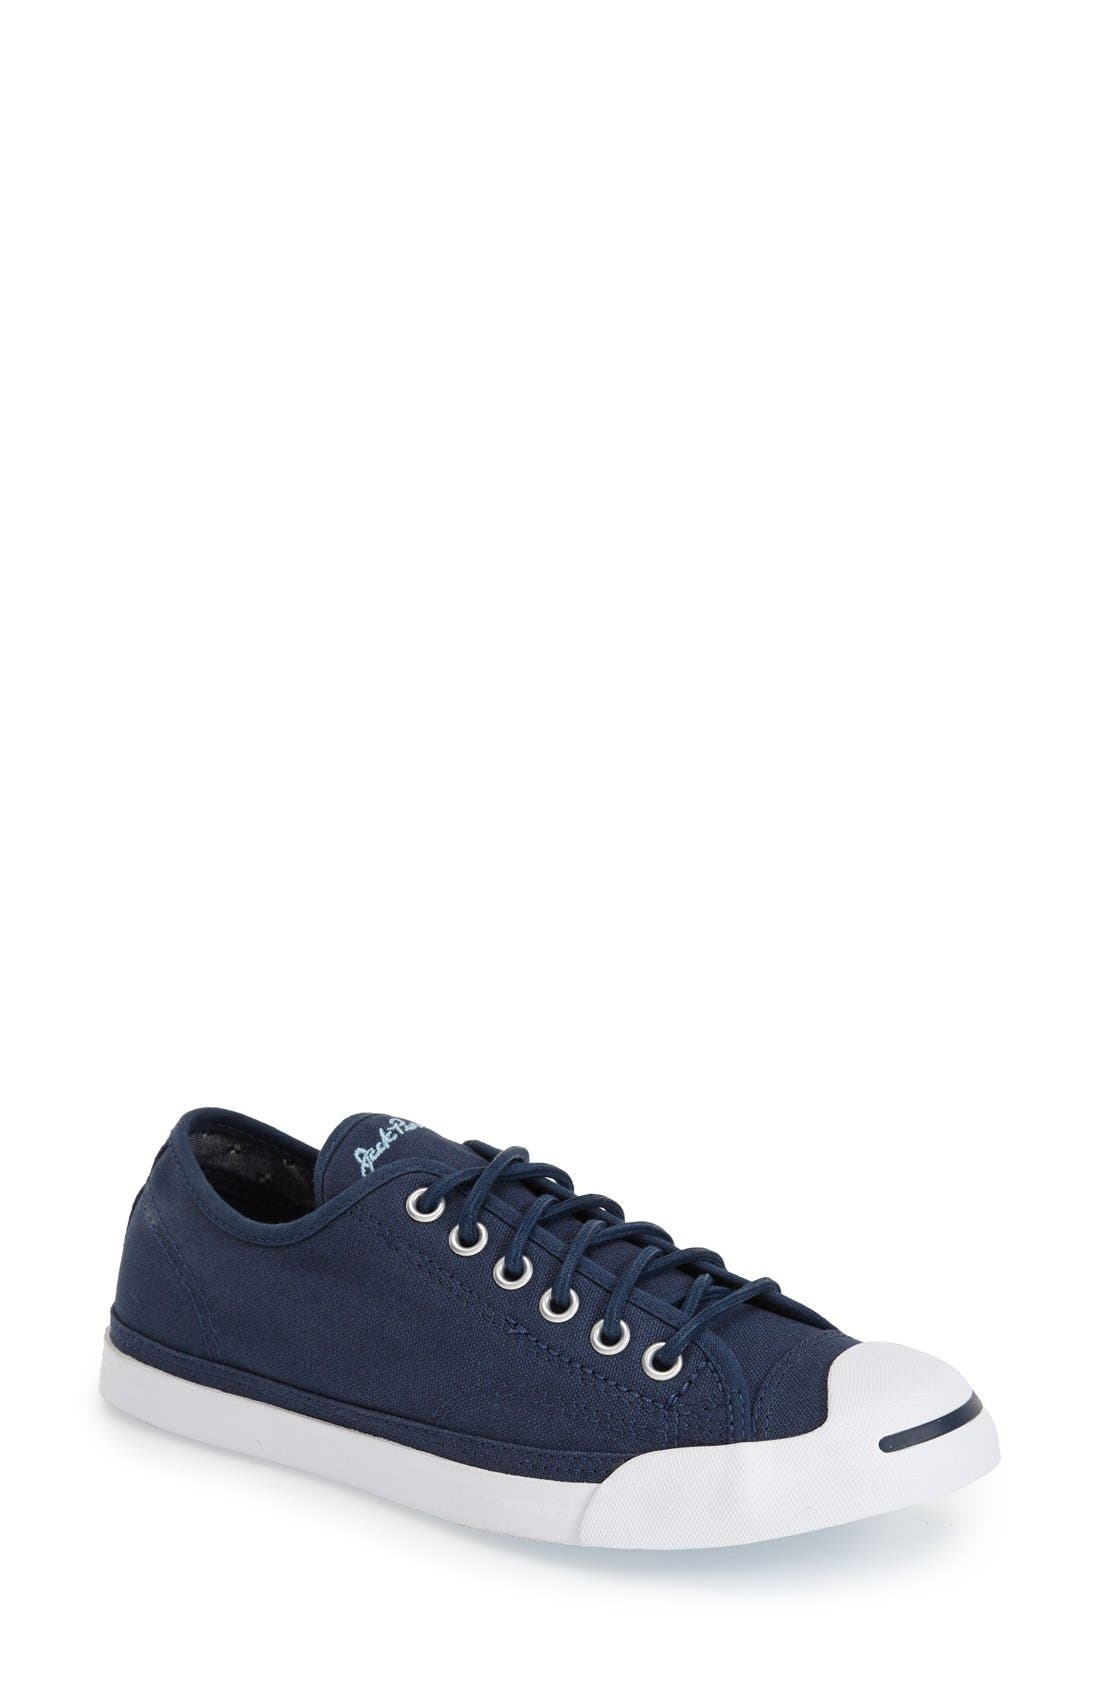 'Jack Purcell' Low Top Slip On Sneaker,                             Main thumbnail 1, color,                             Navy/ Blue/ White